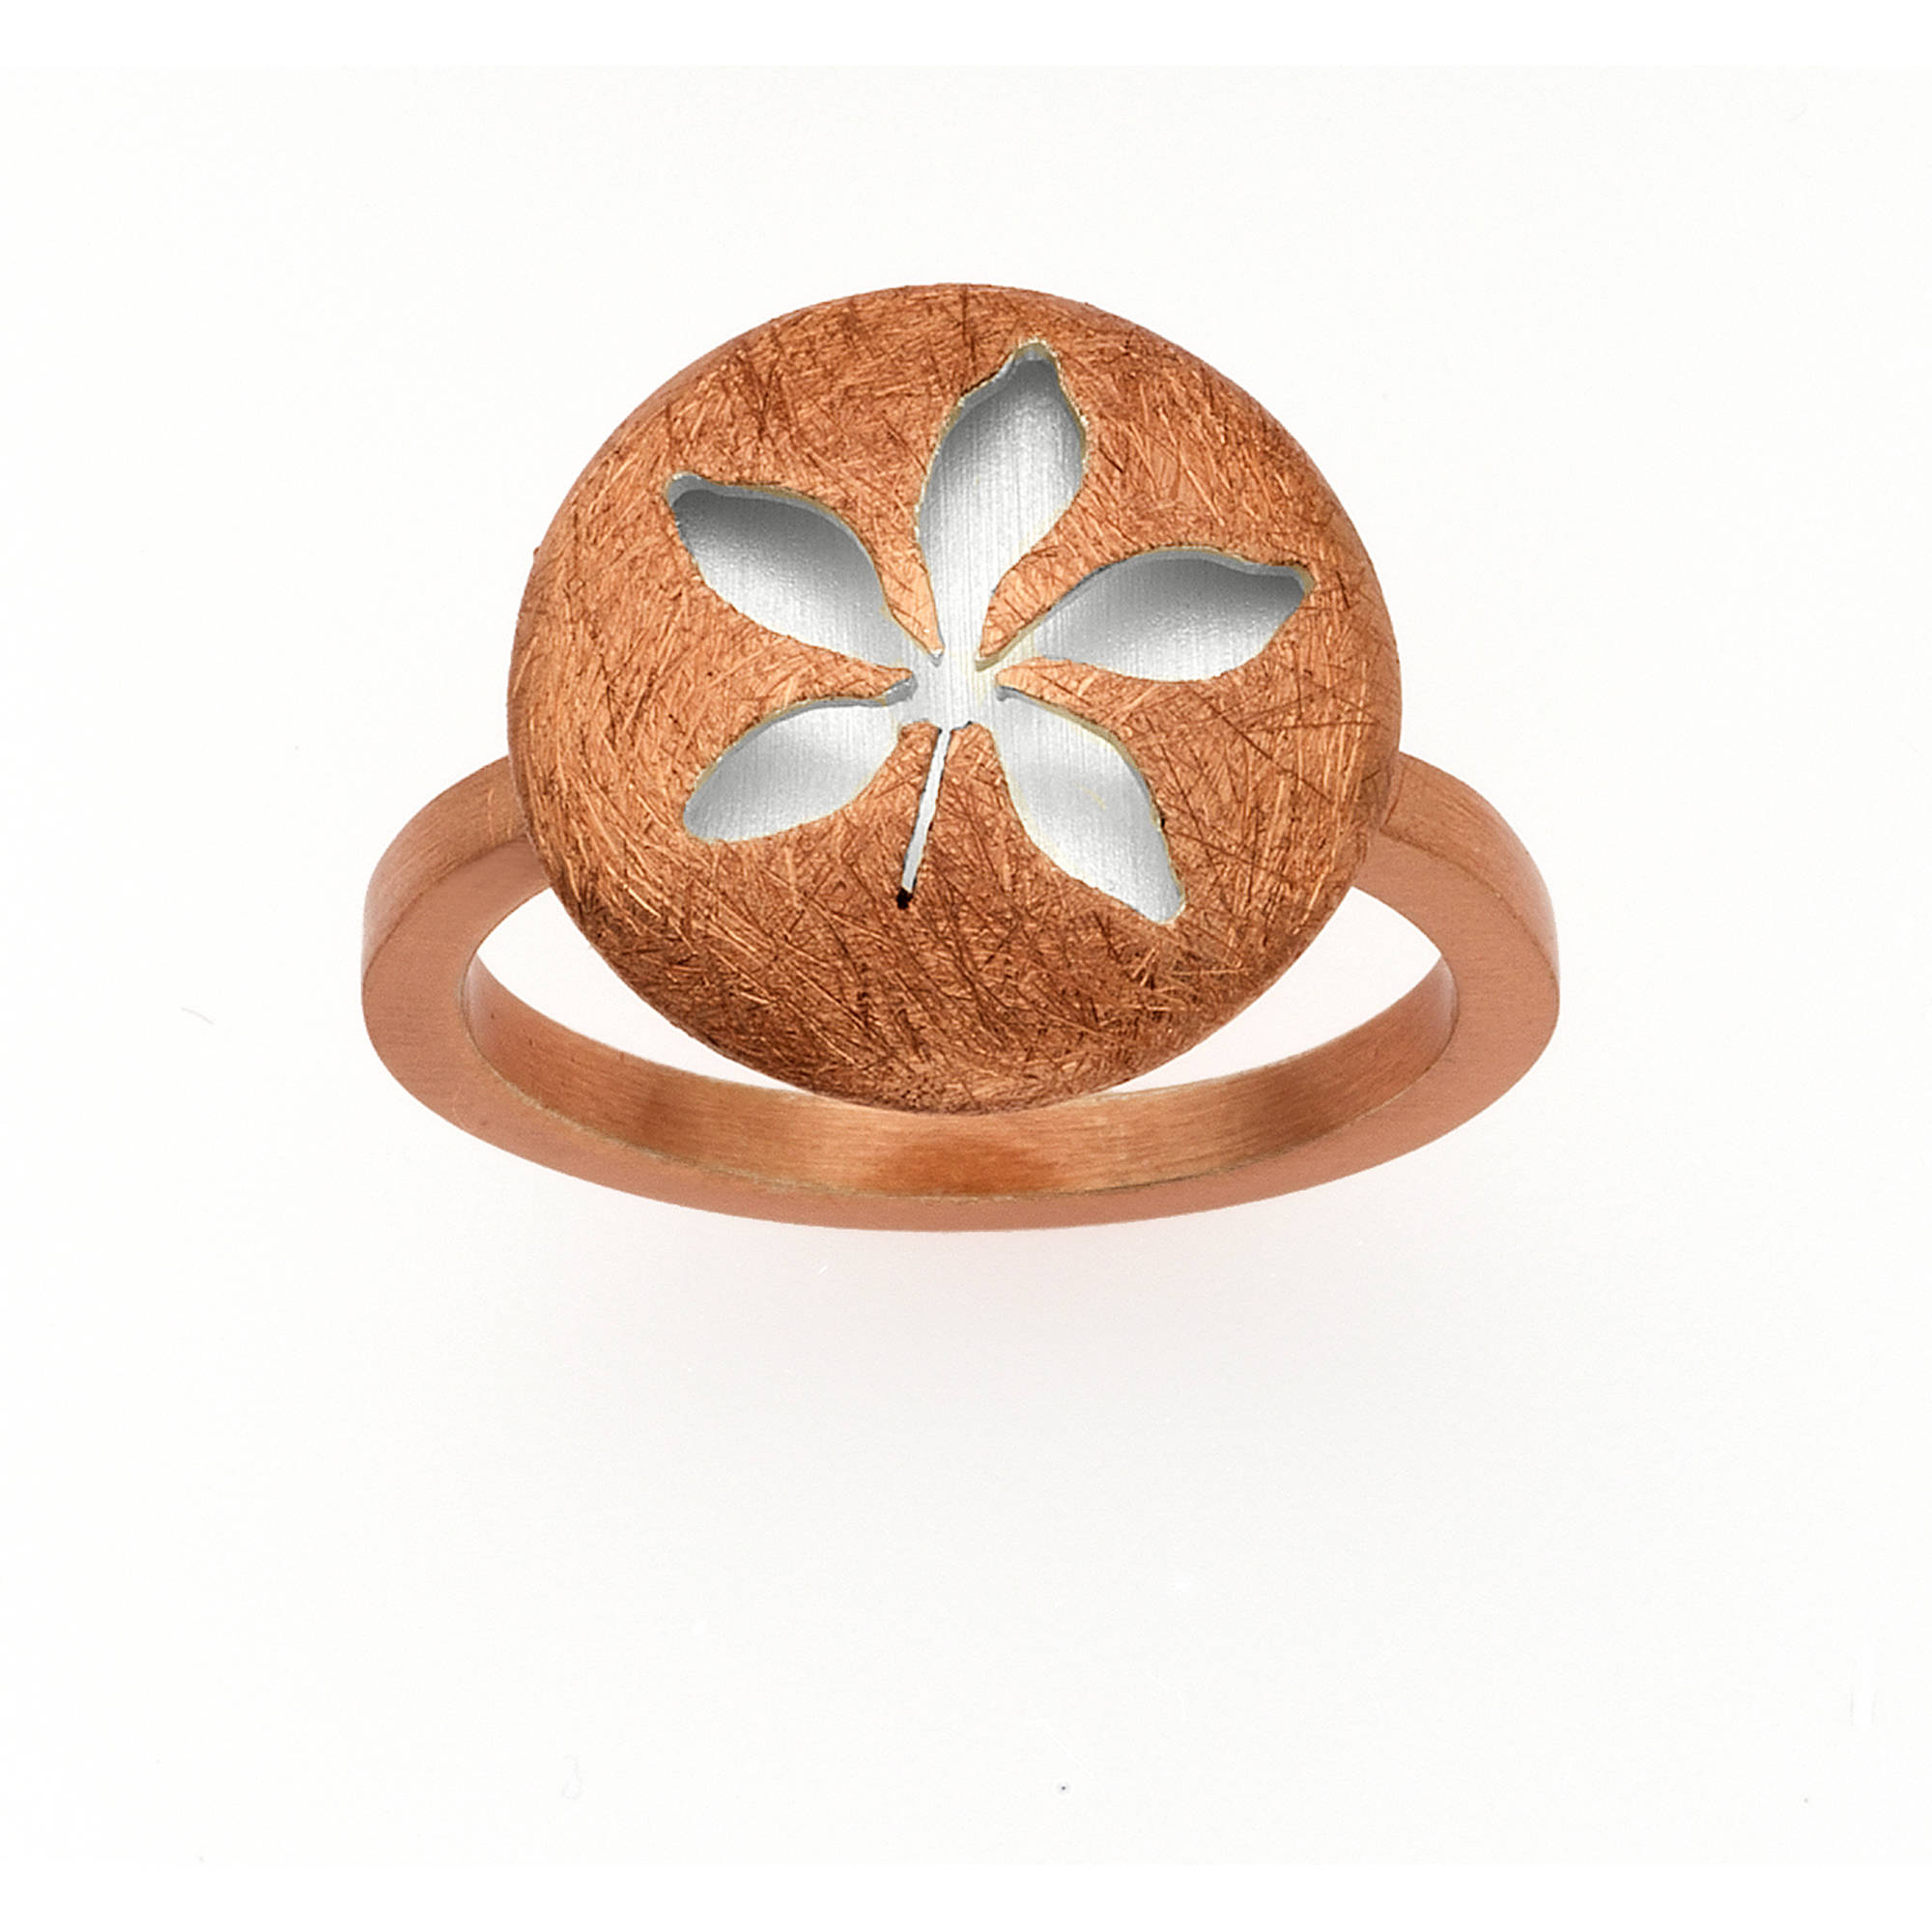 Image of 5th & Main 14kt Rose Gold-Plated and Sterling Silver Leaf Ring